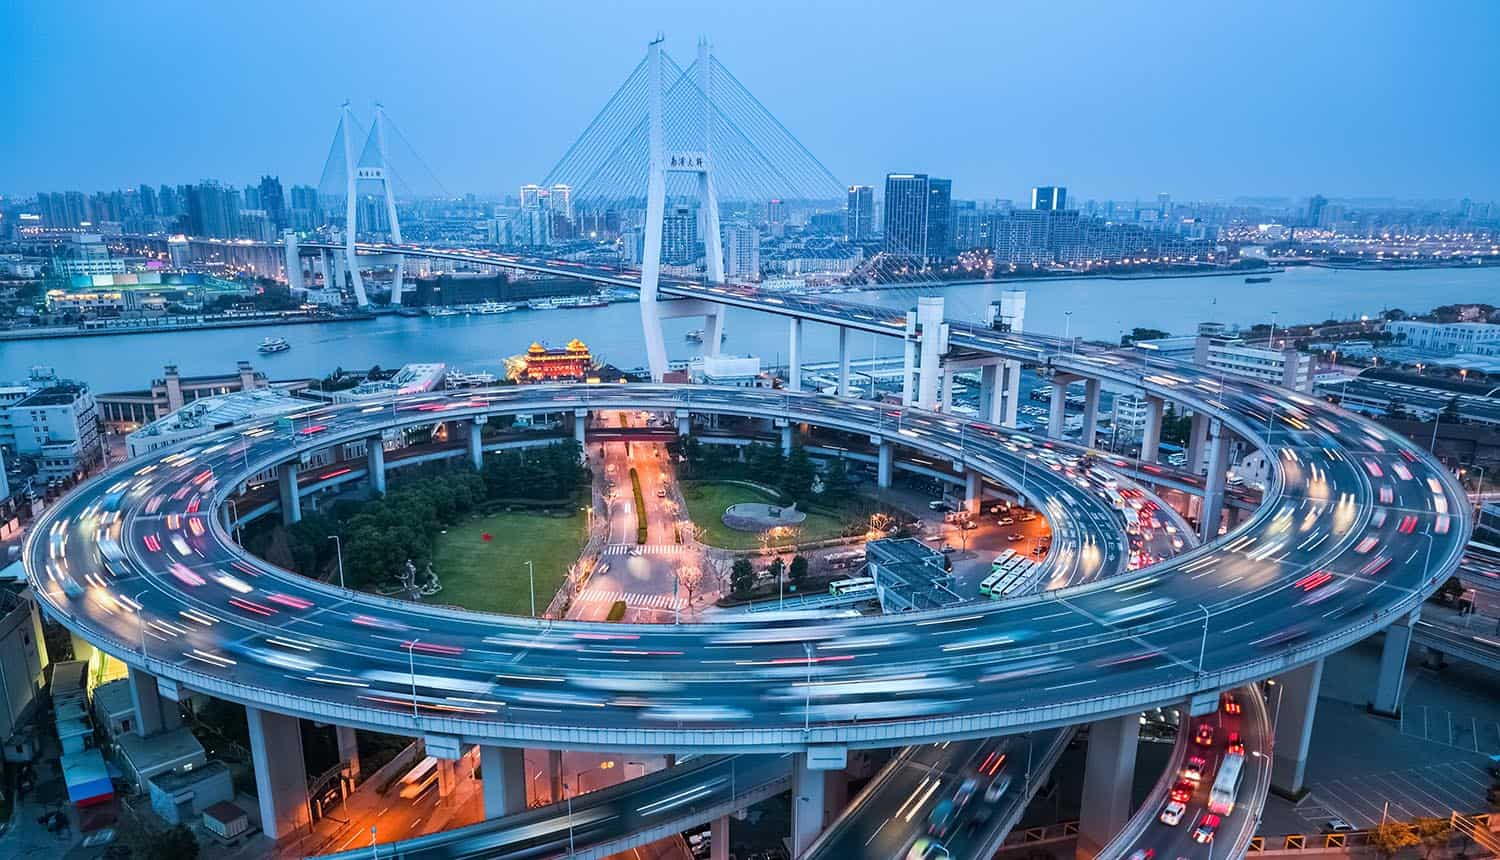 Shanghai Nanpu bridge with busy city traffic showing Didi problems with data protection rules